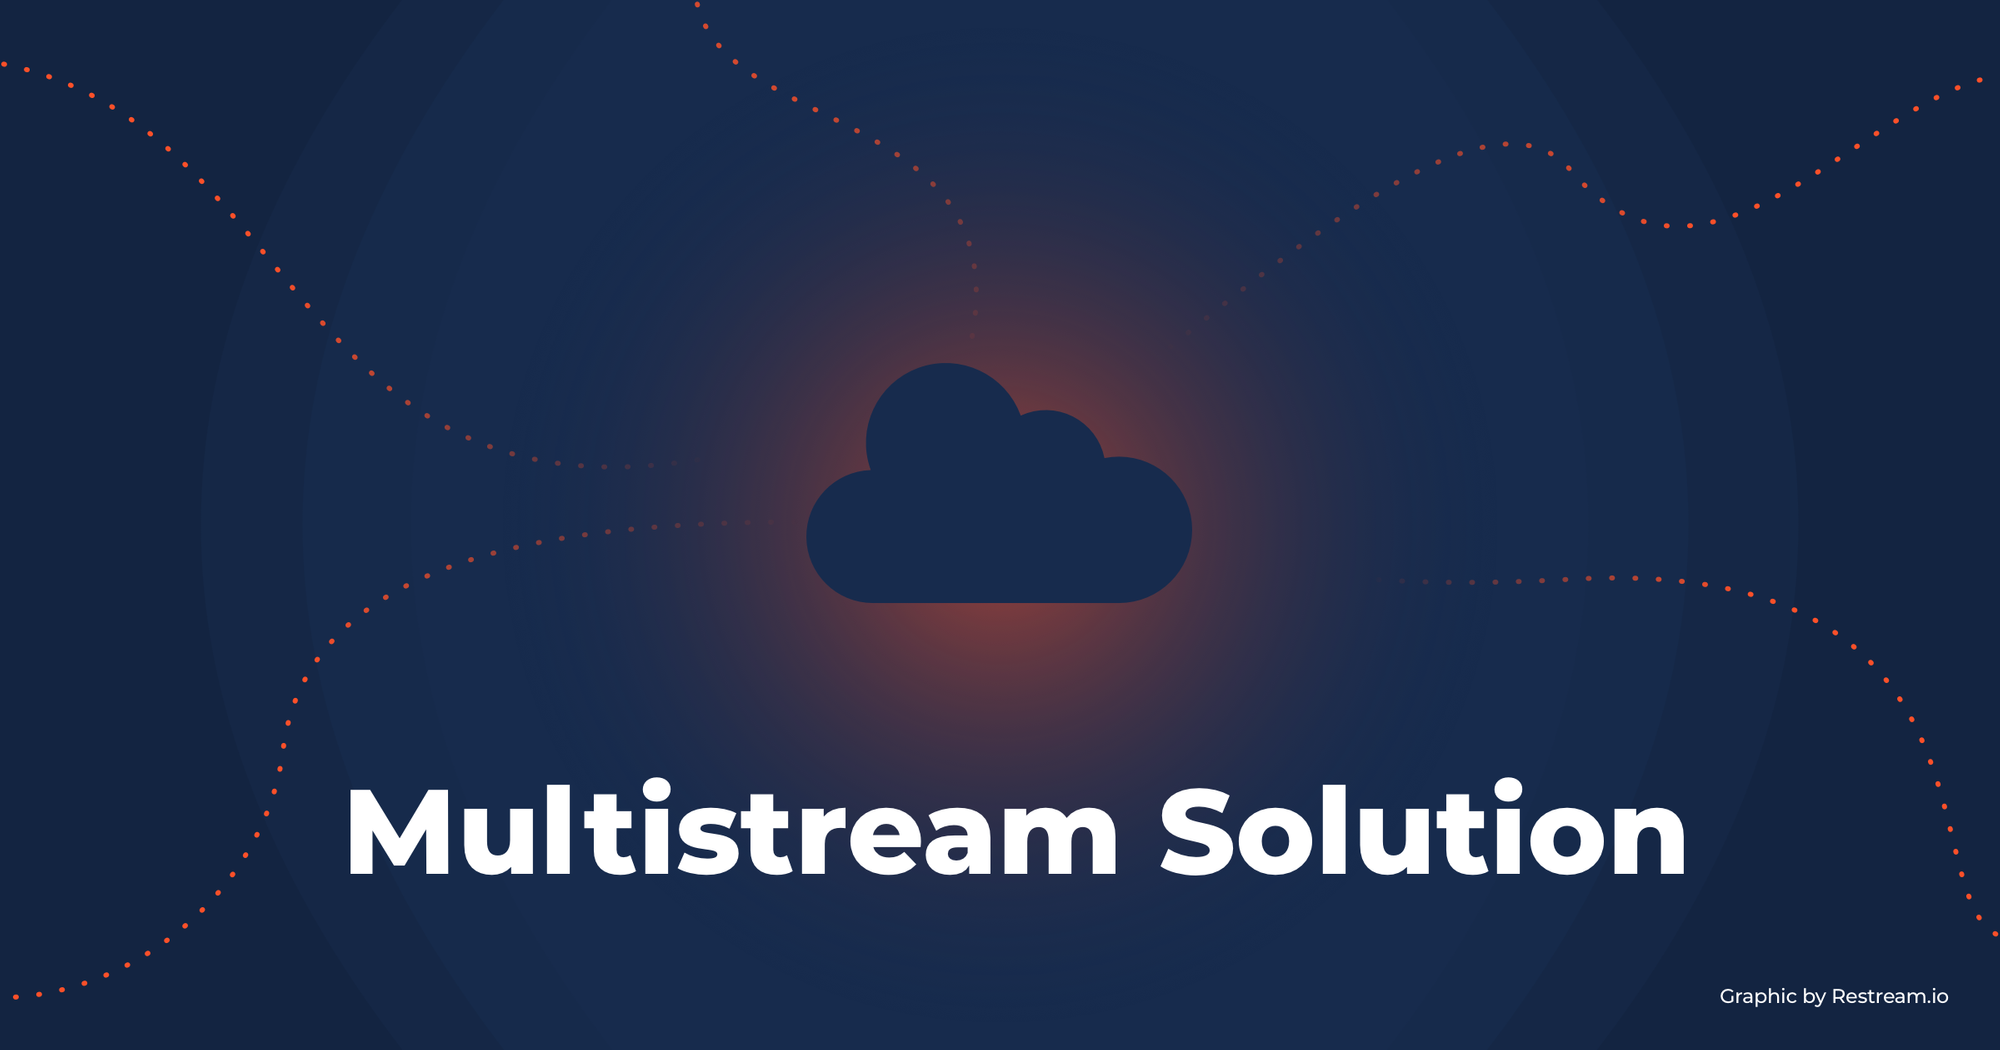 Multistream Solution